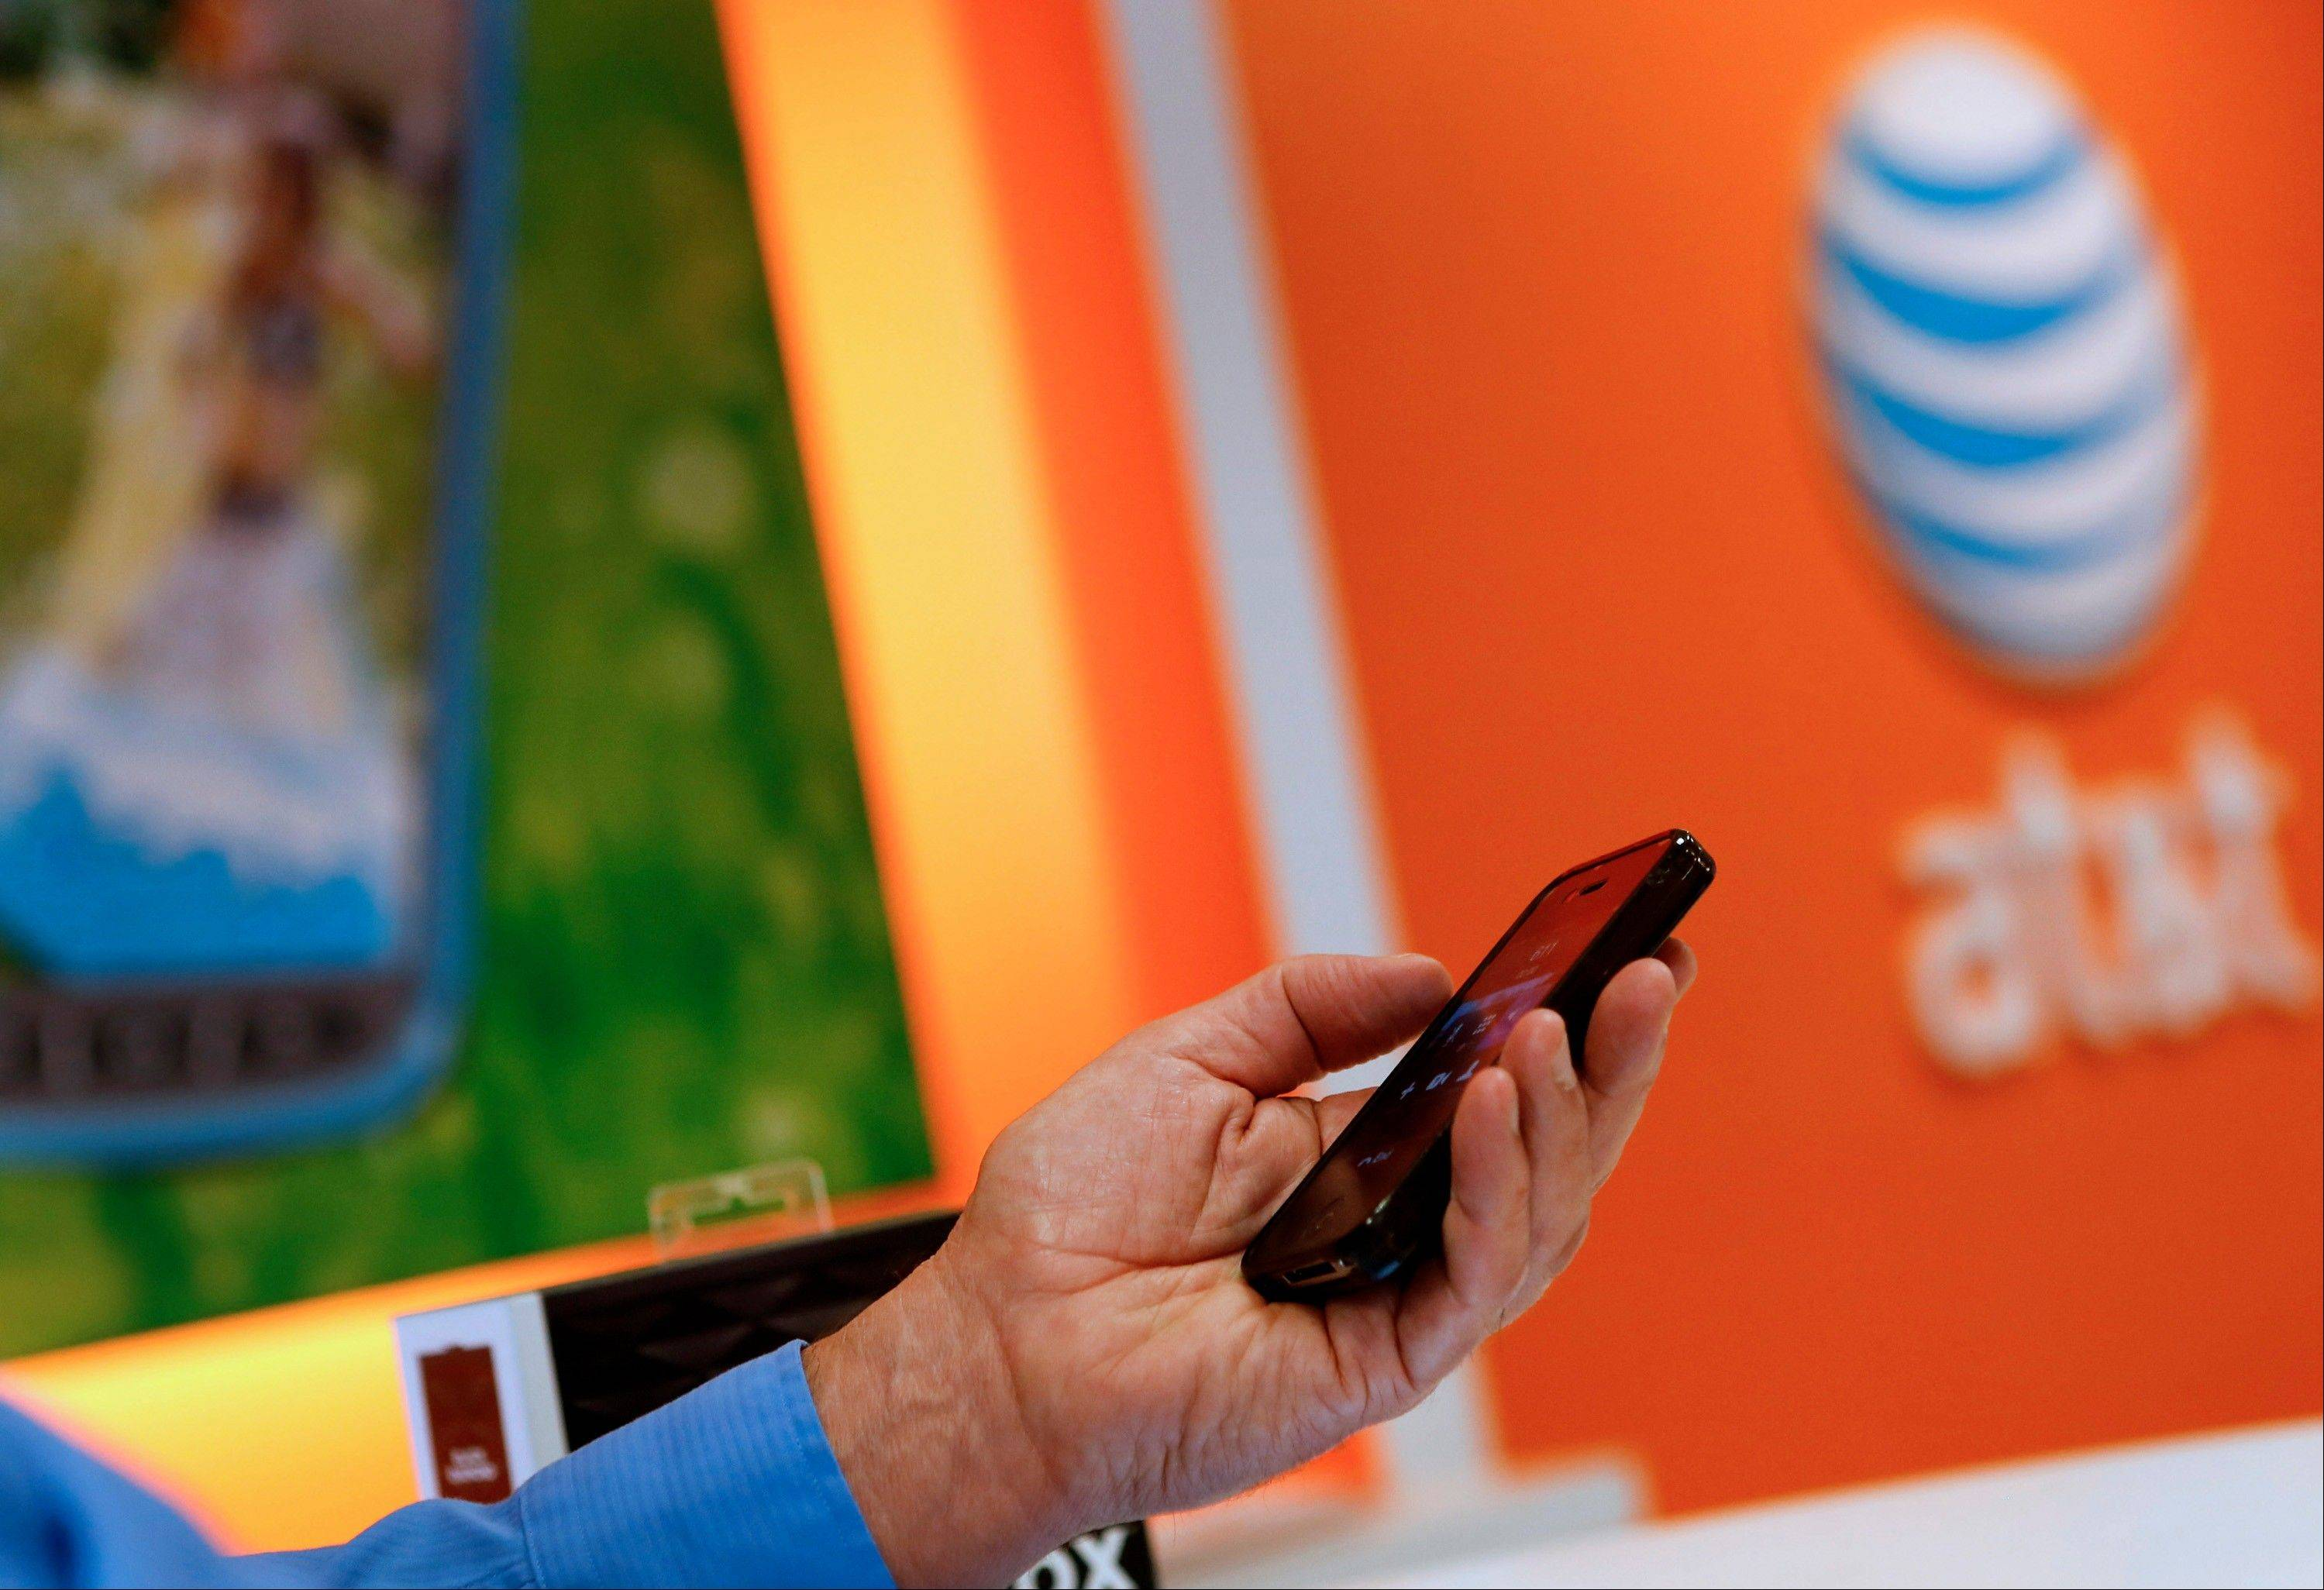 AT&T is the first major cellphone company to create a comprehensive service for sponsored wireless access in the U.S. The move is likely to face considerable opposition from public-interest groups that fear the service could discourage consumers from exploring new sites that can't afford to pay communications carriers for traffic.